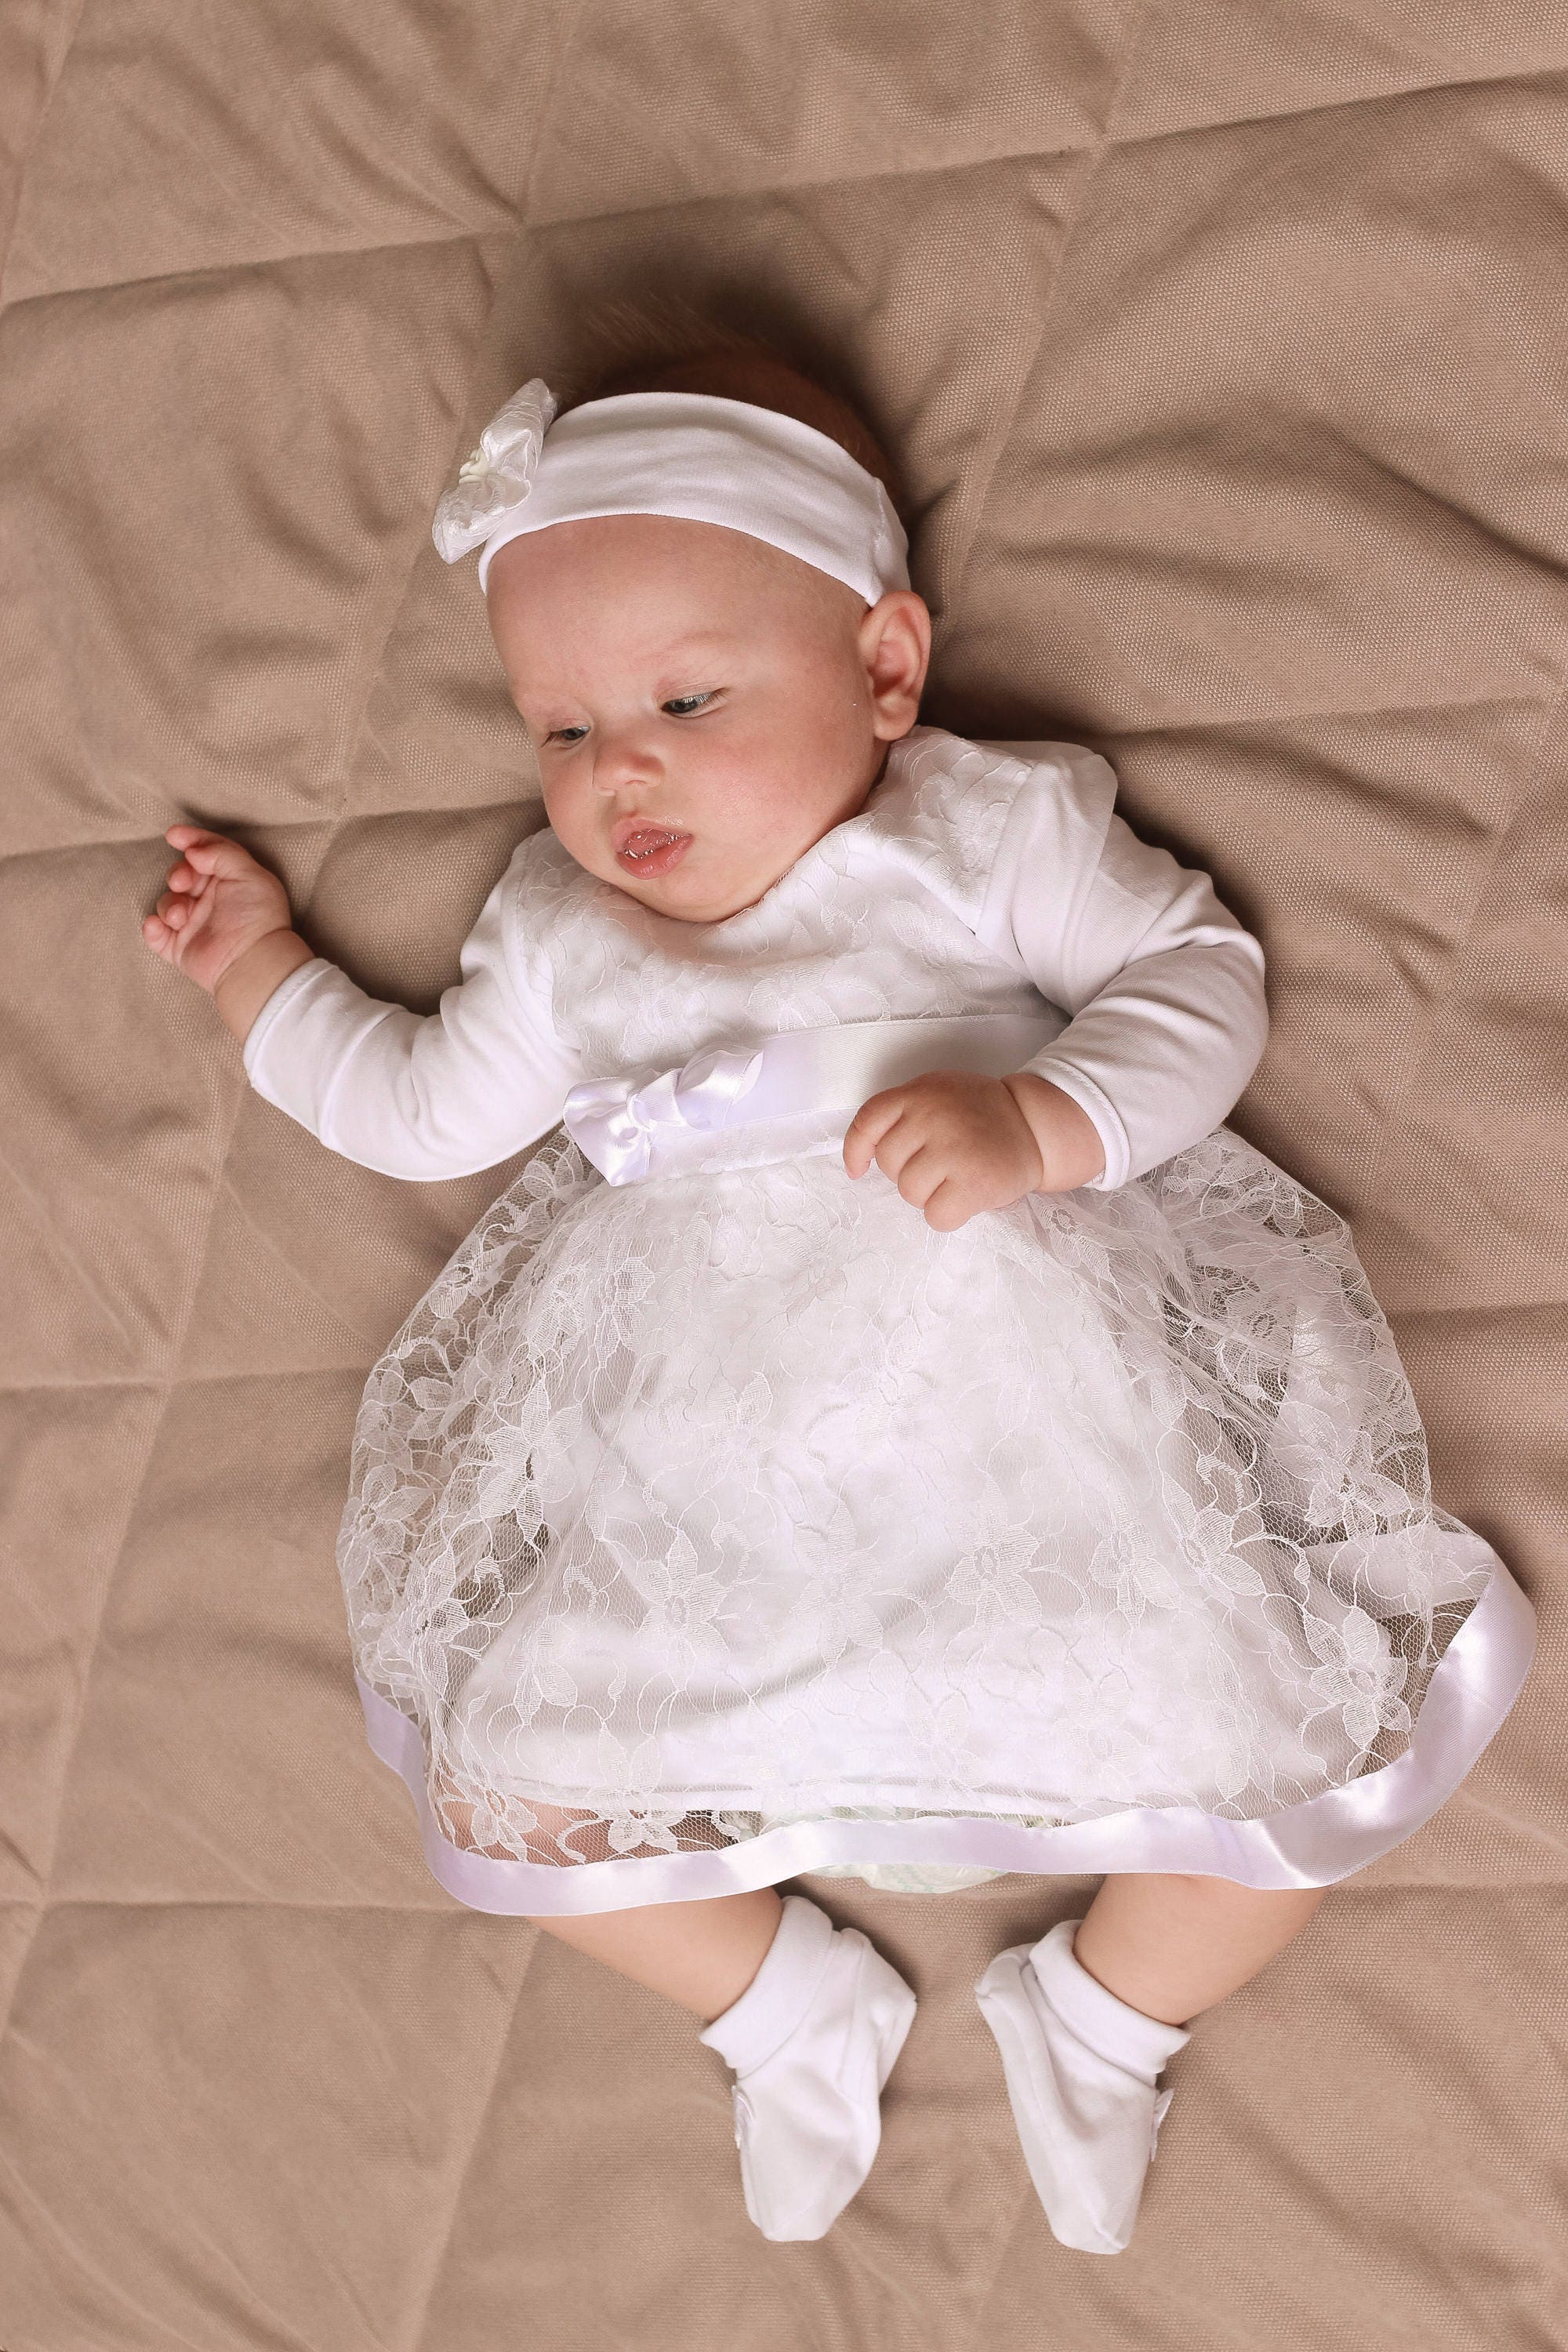 baptism dress for baby girl christening dress baptism gown baby